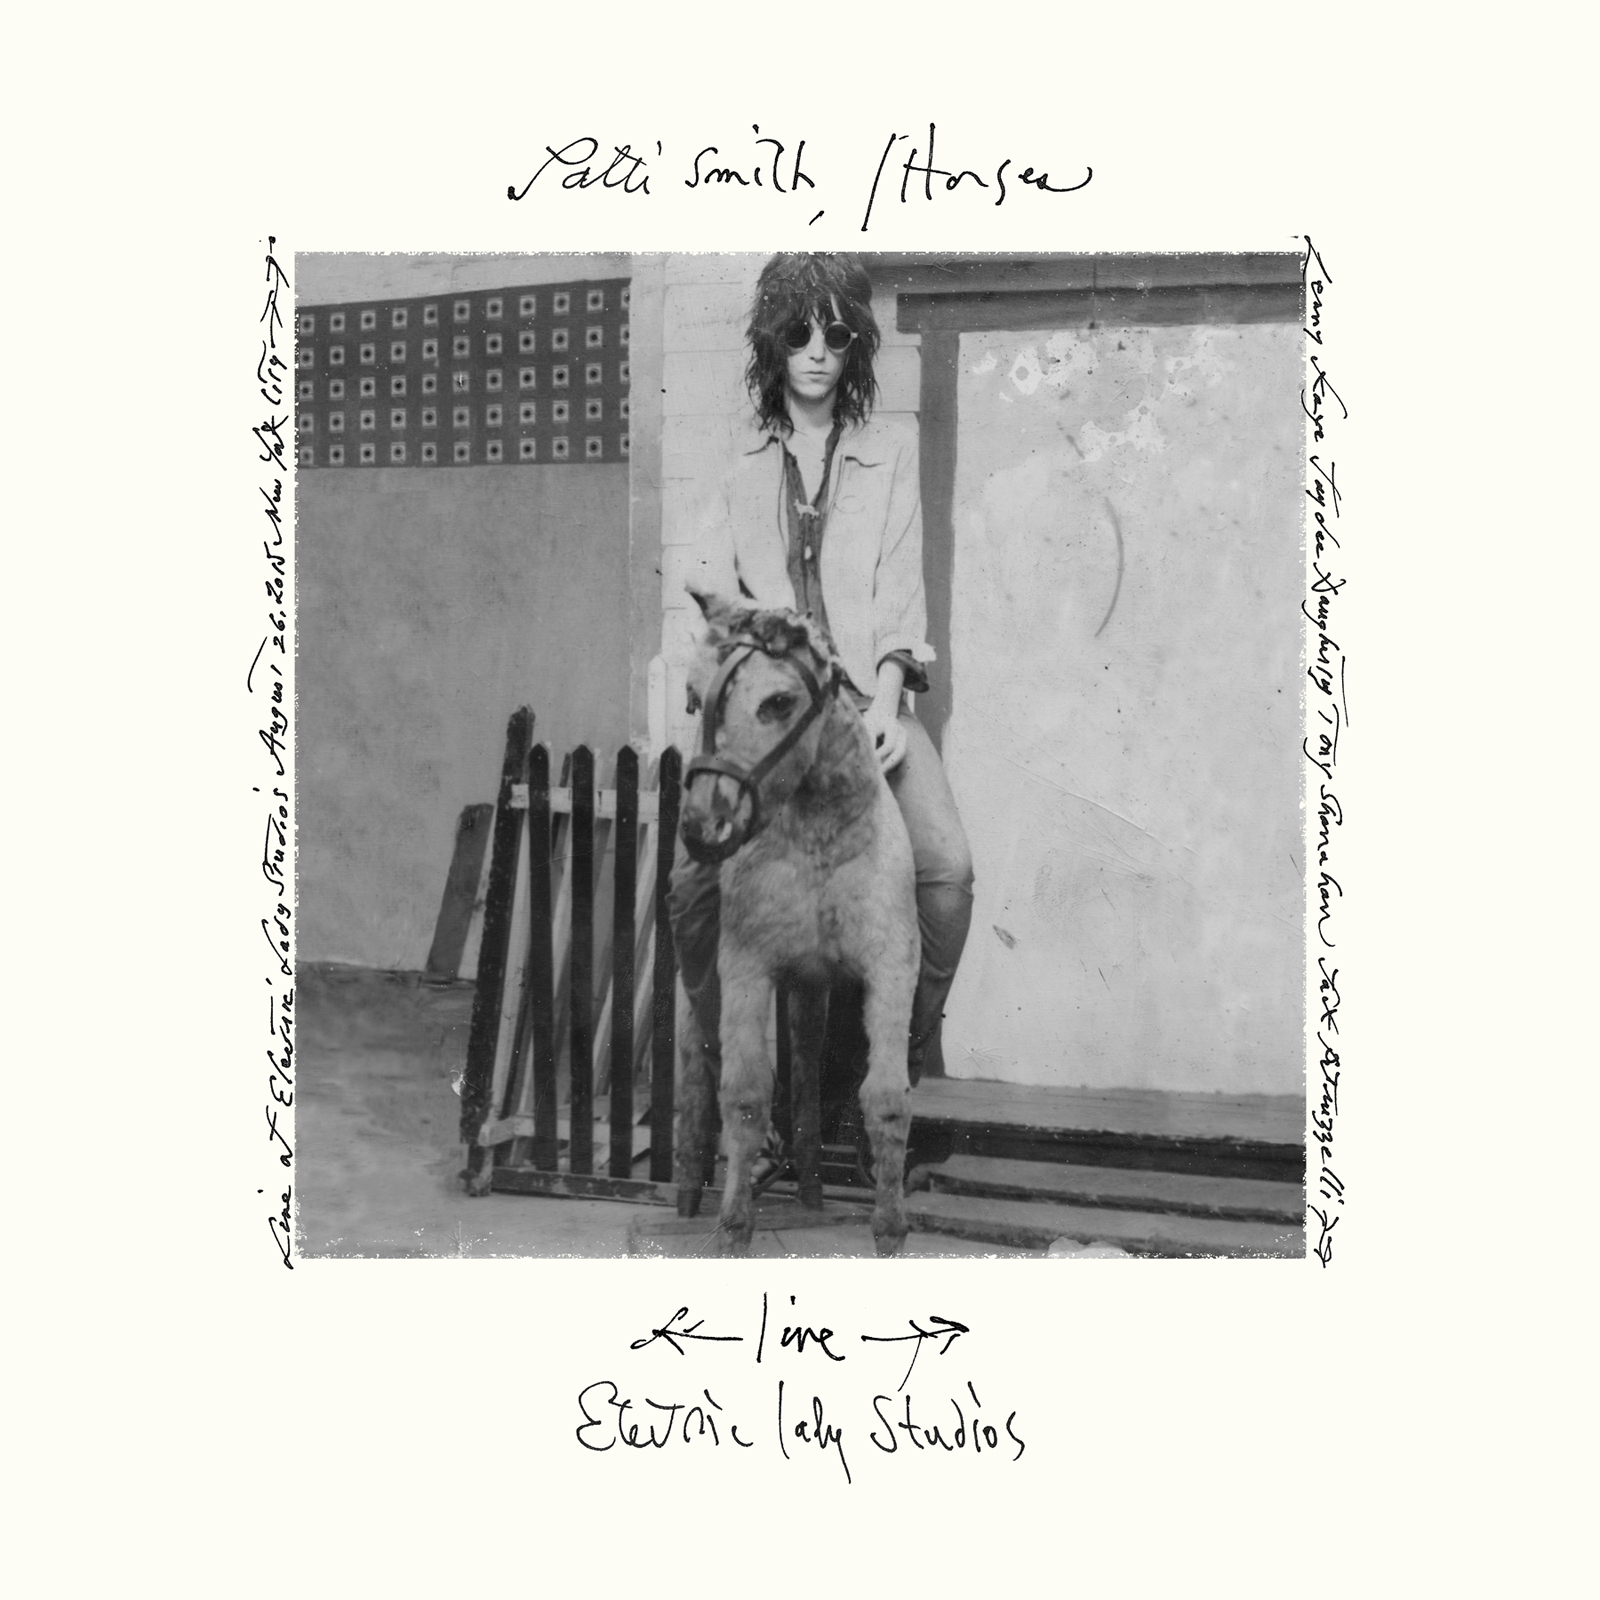 patti-smith-horses-live-at-els